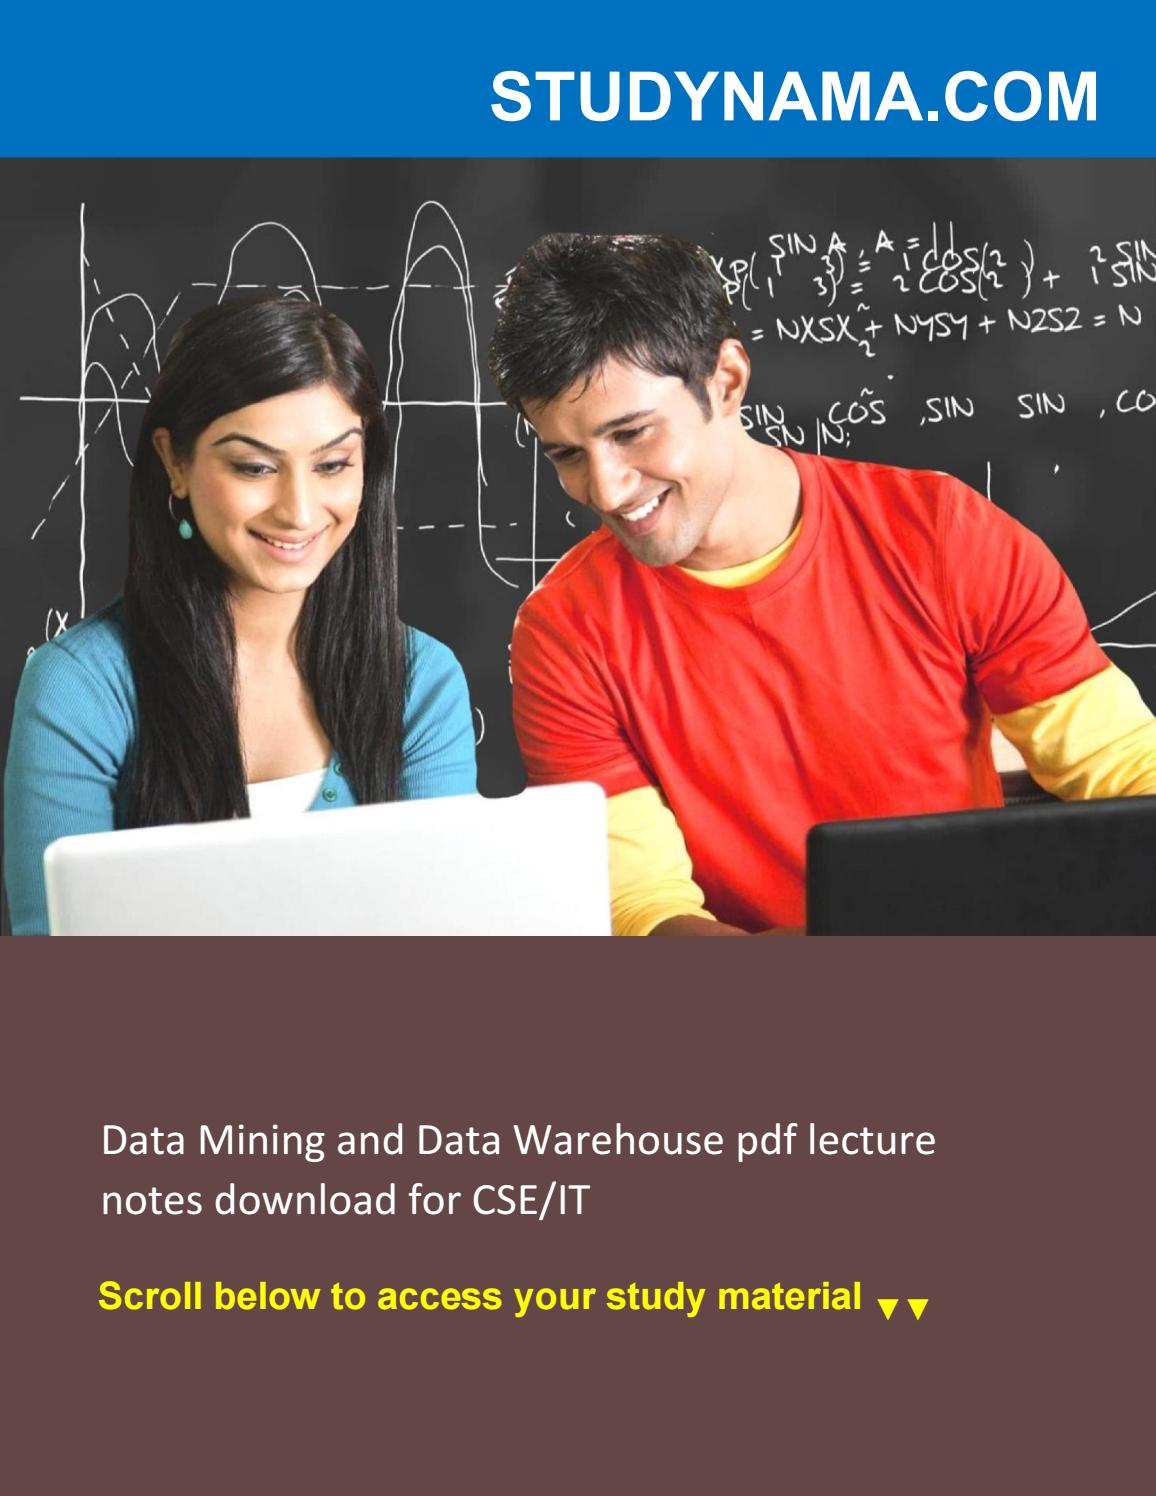 Data Mining and Data Warehouse pdf lecture notes download